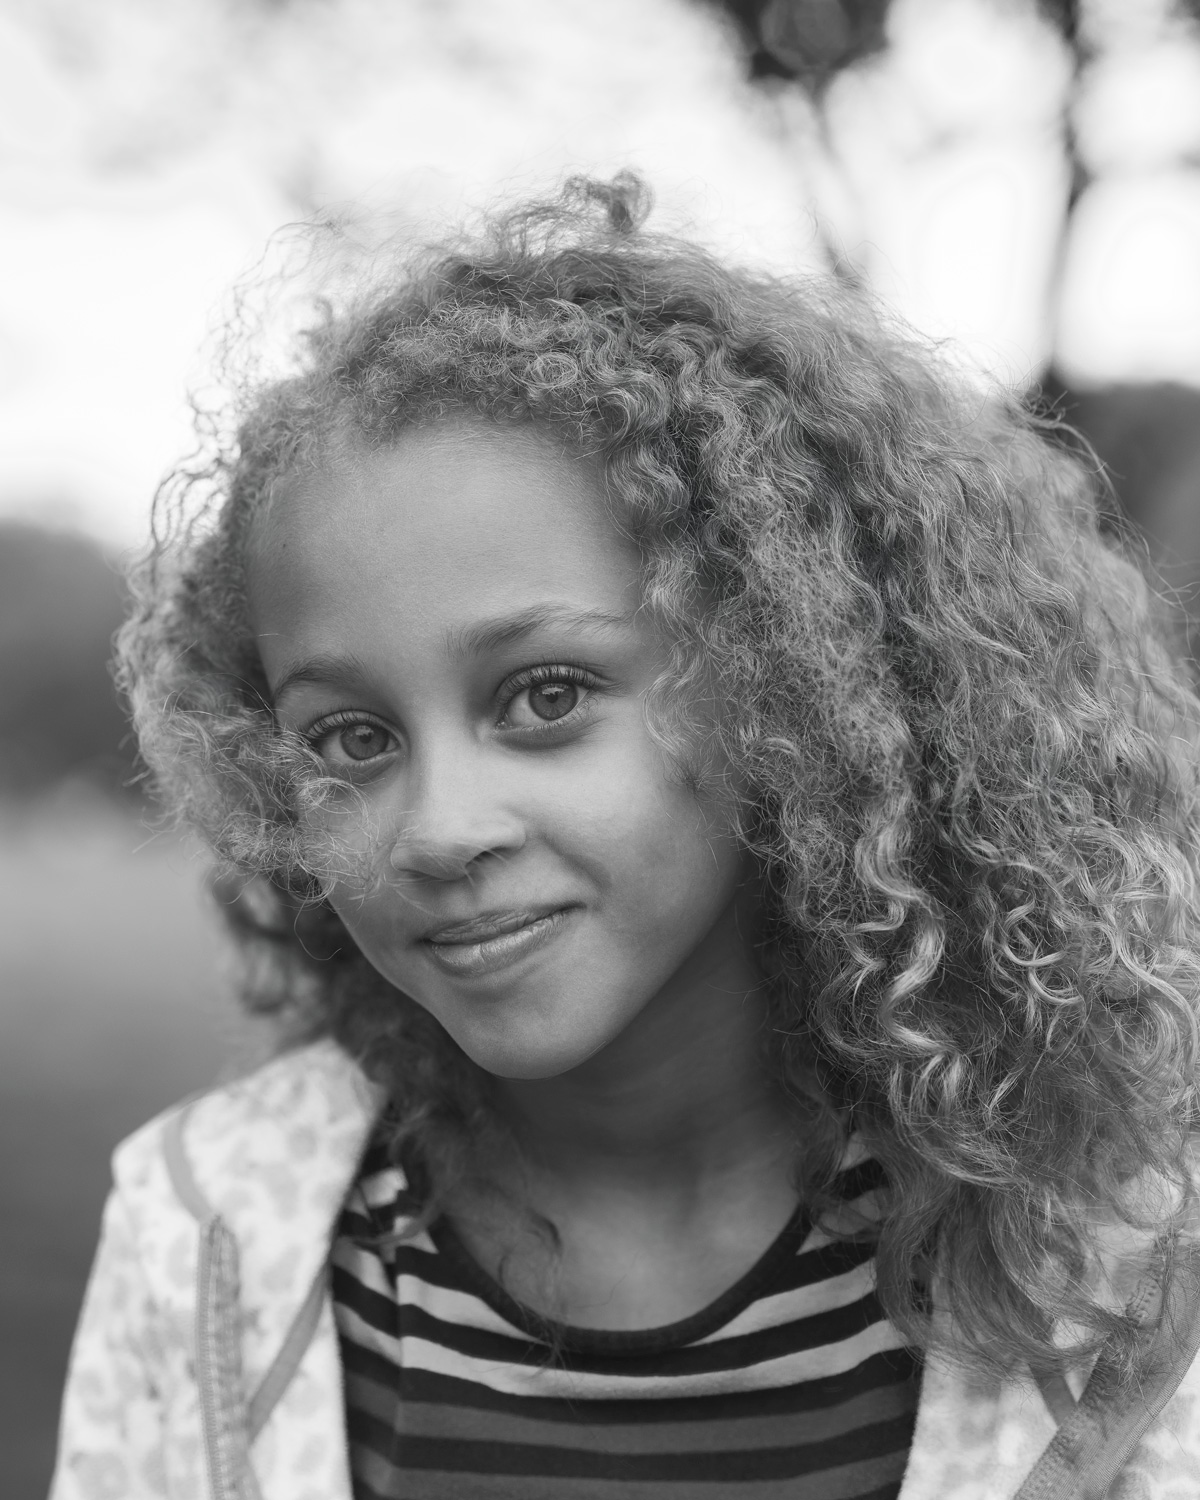 Black& white portrait of young girl